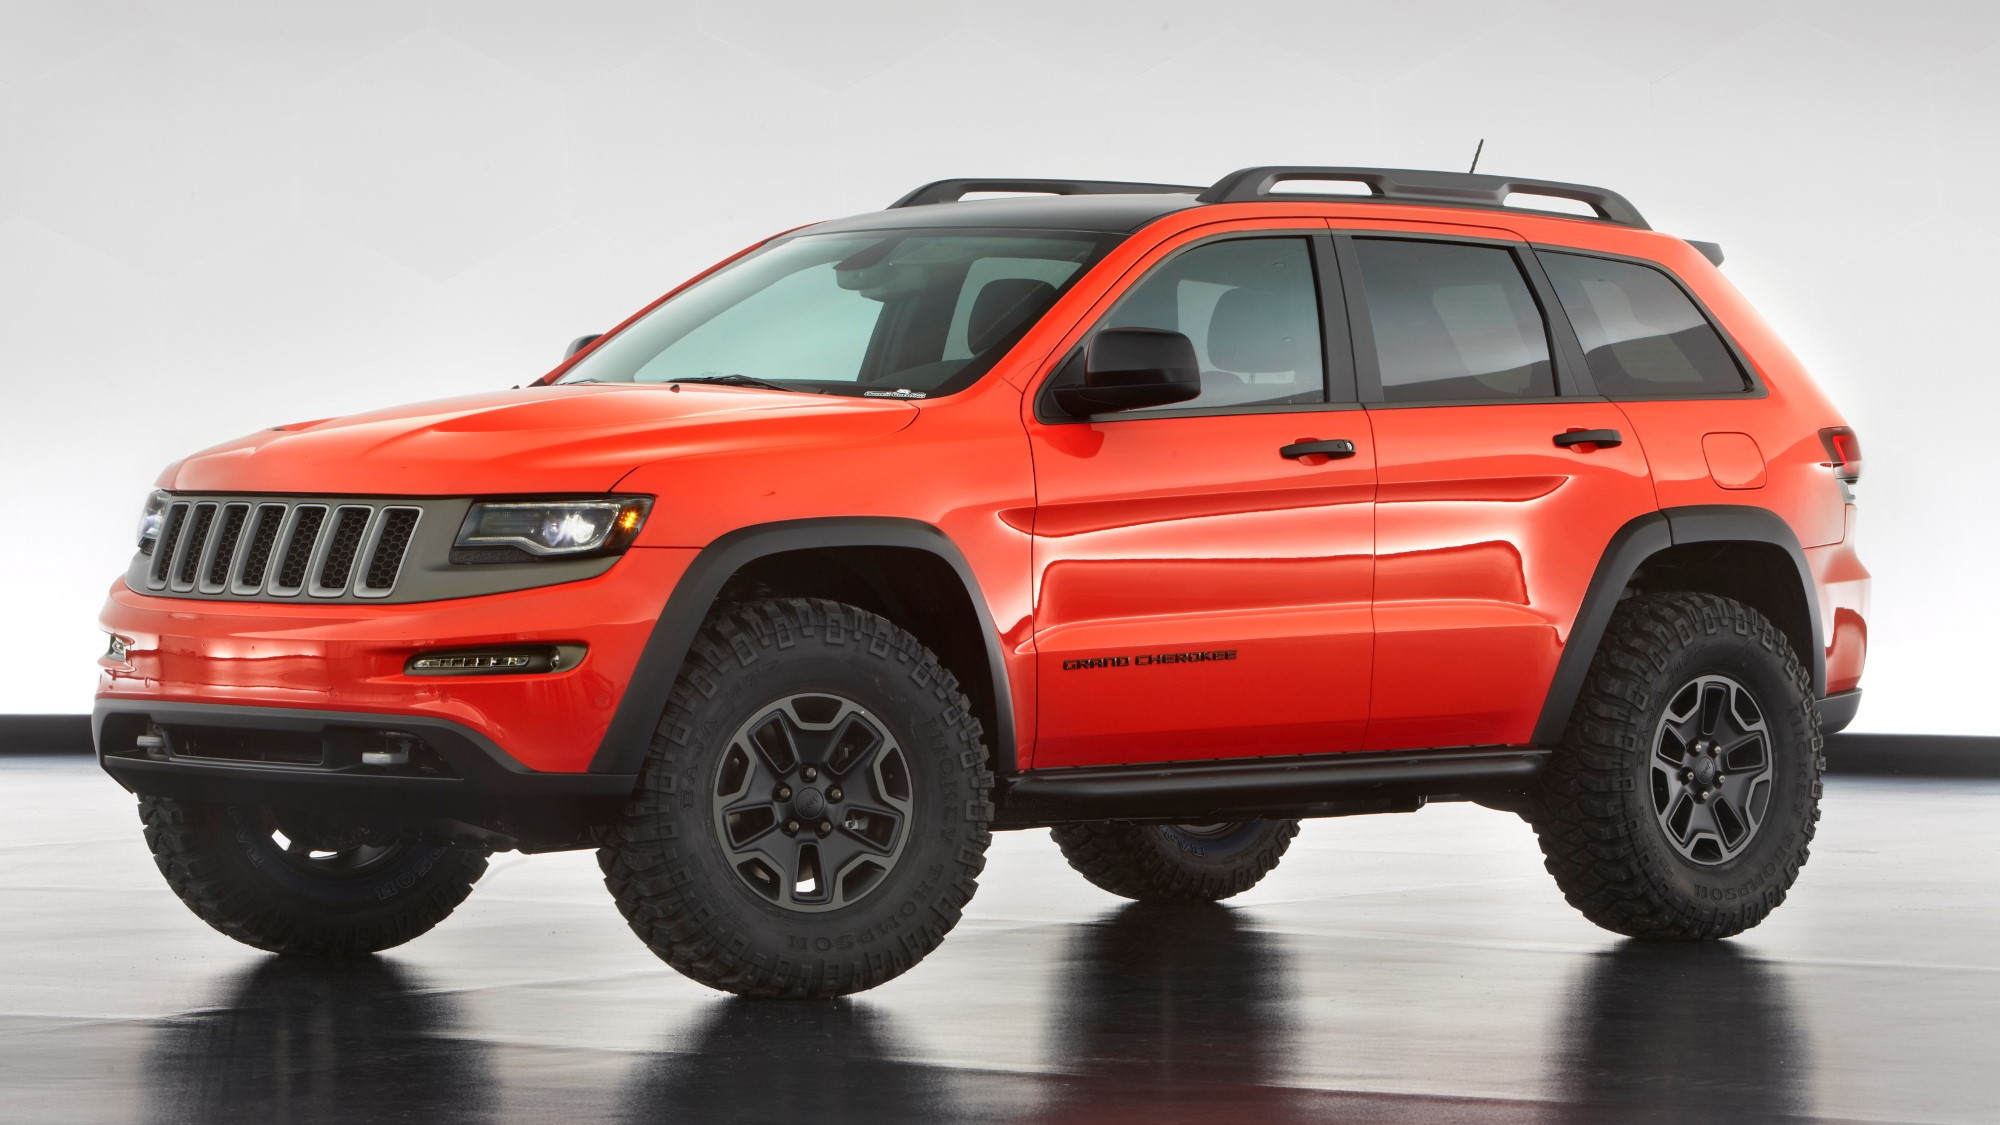 Jeep Grand Cherokee Trailhawk II, 2013 Moab Easter Jeep Safari Concept